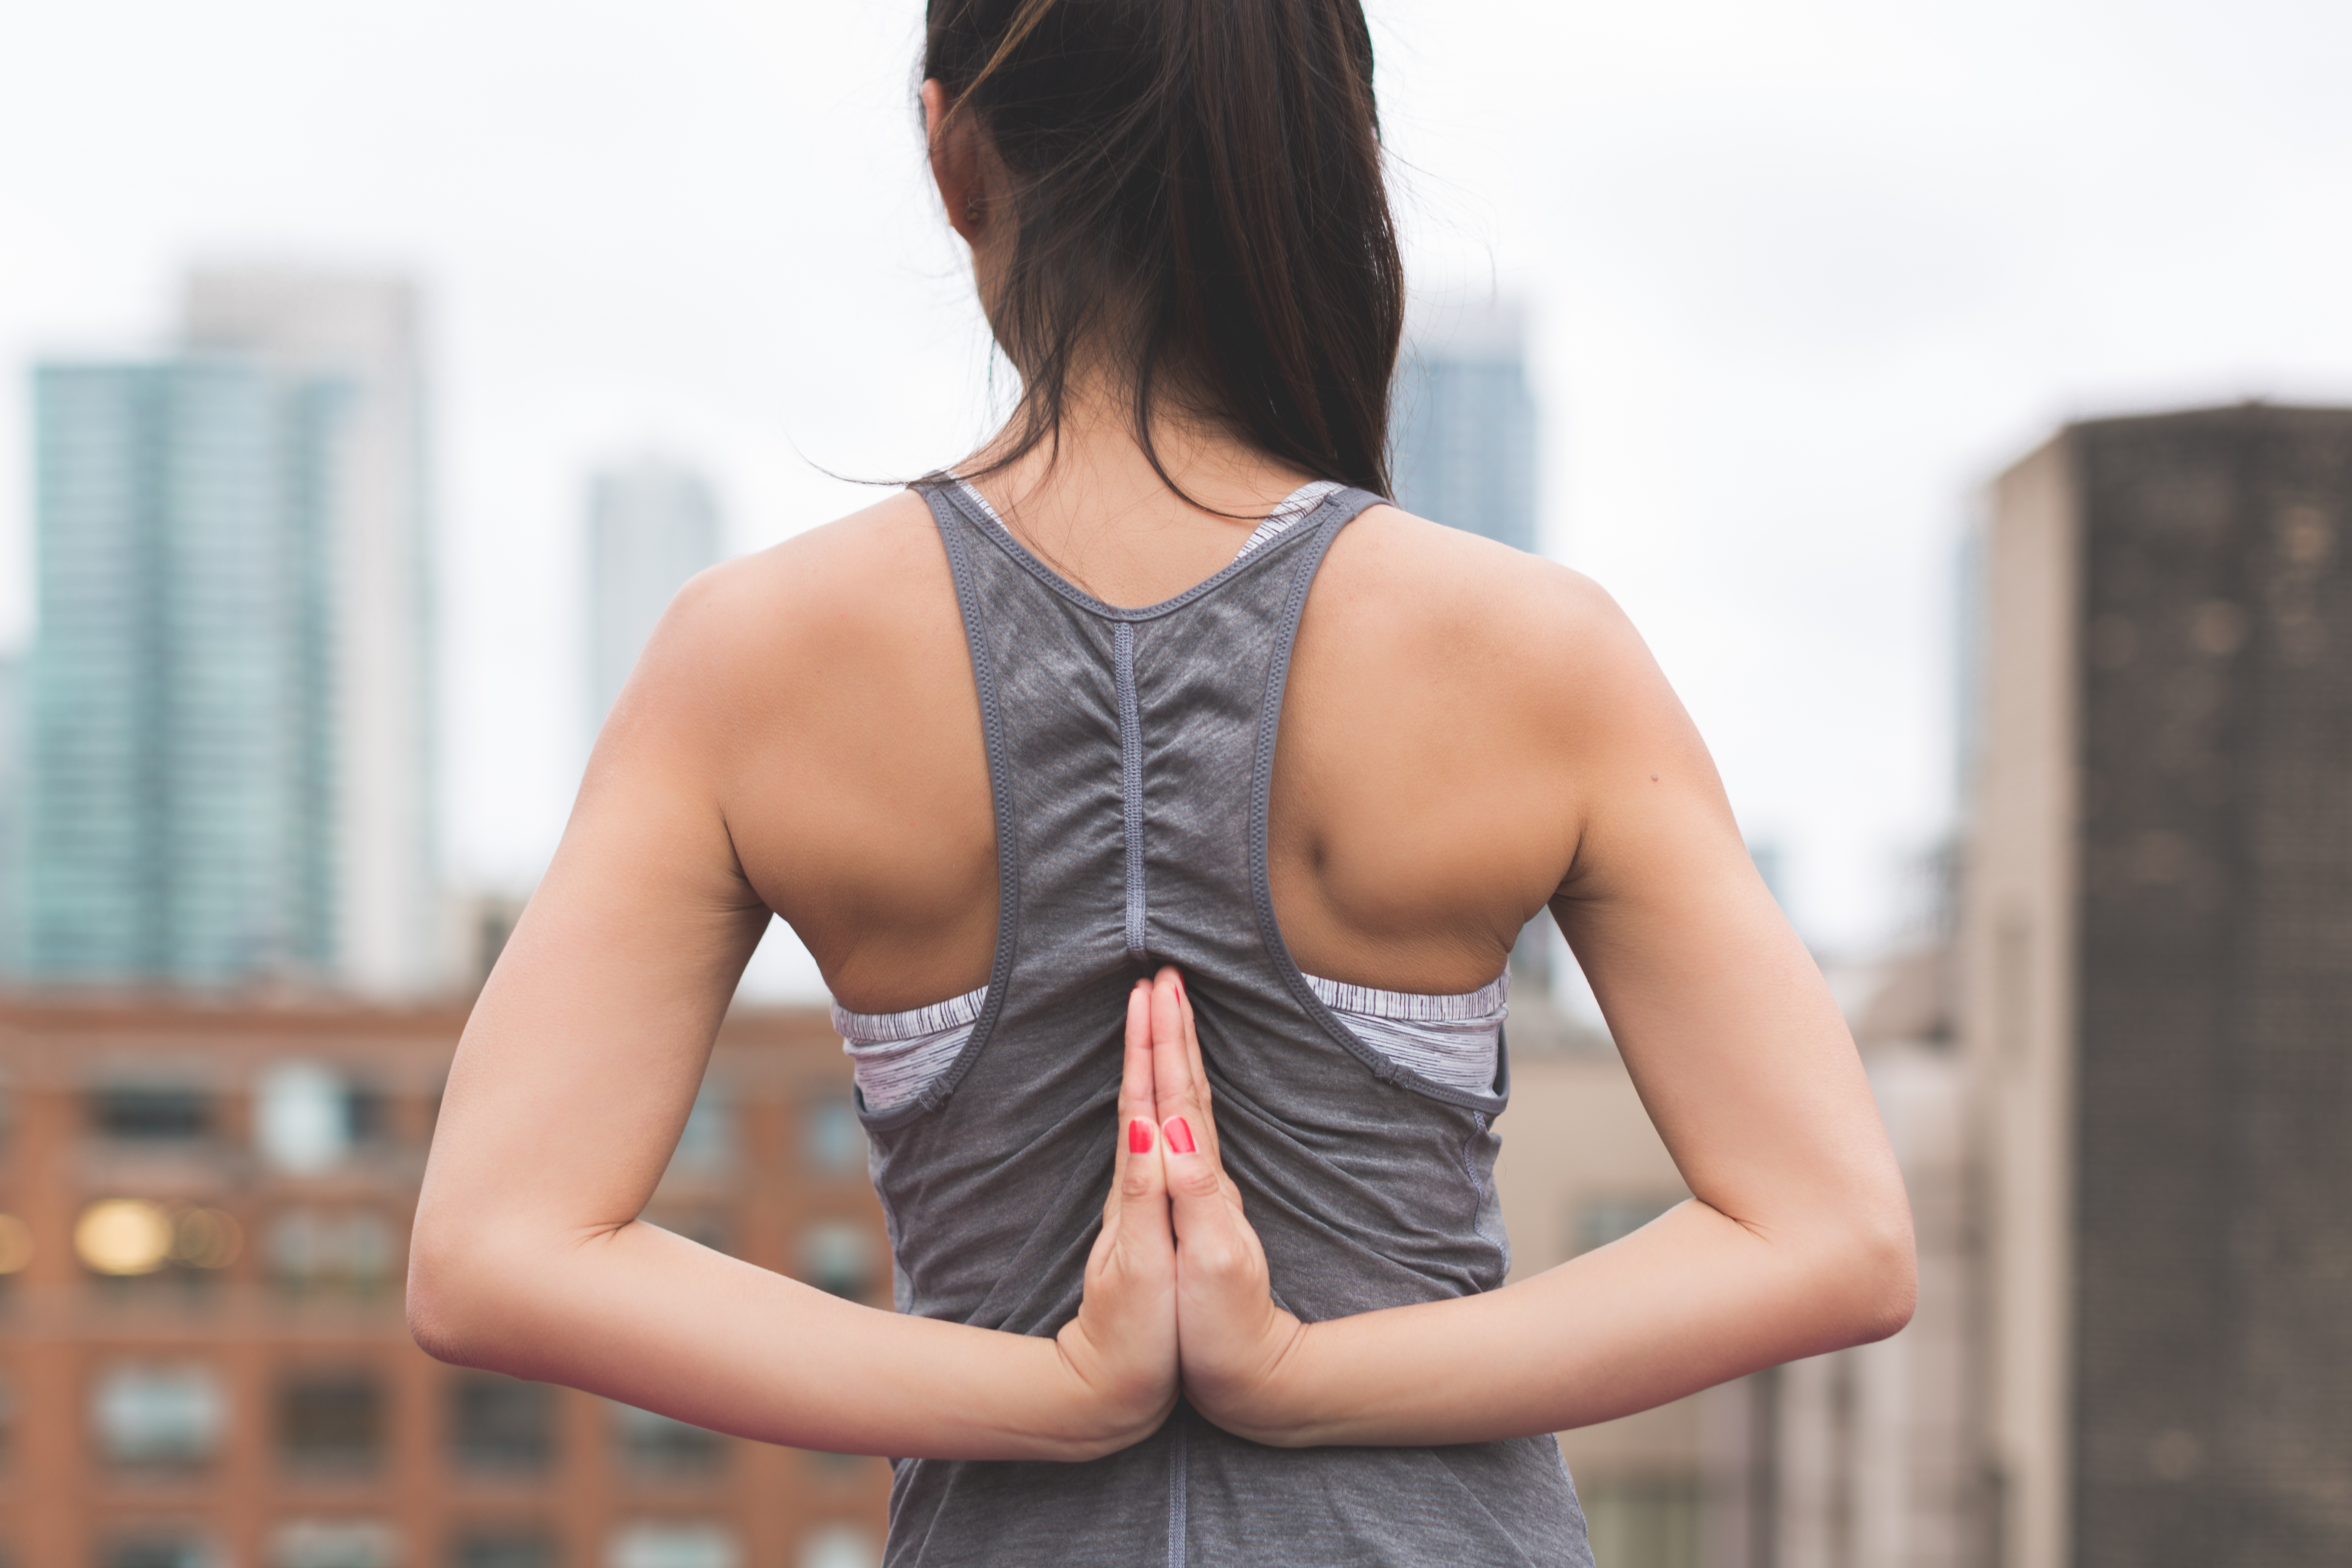 A female athlete practicing the key benefits that meditation has for athletic performance